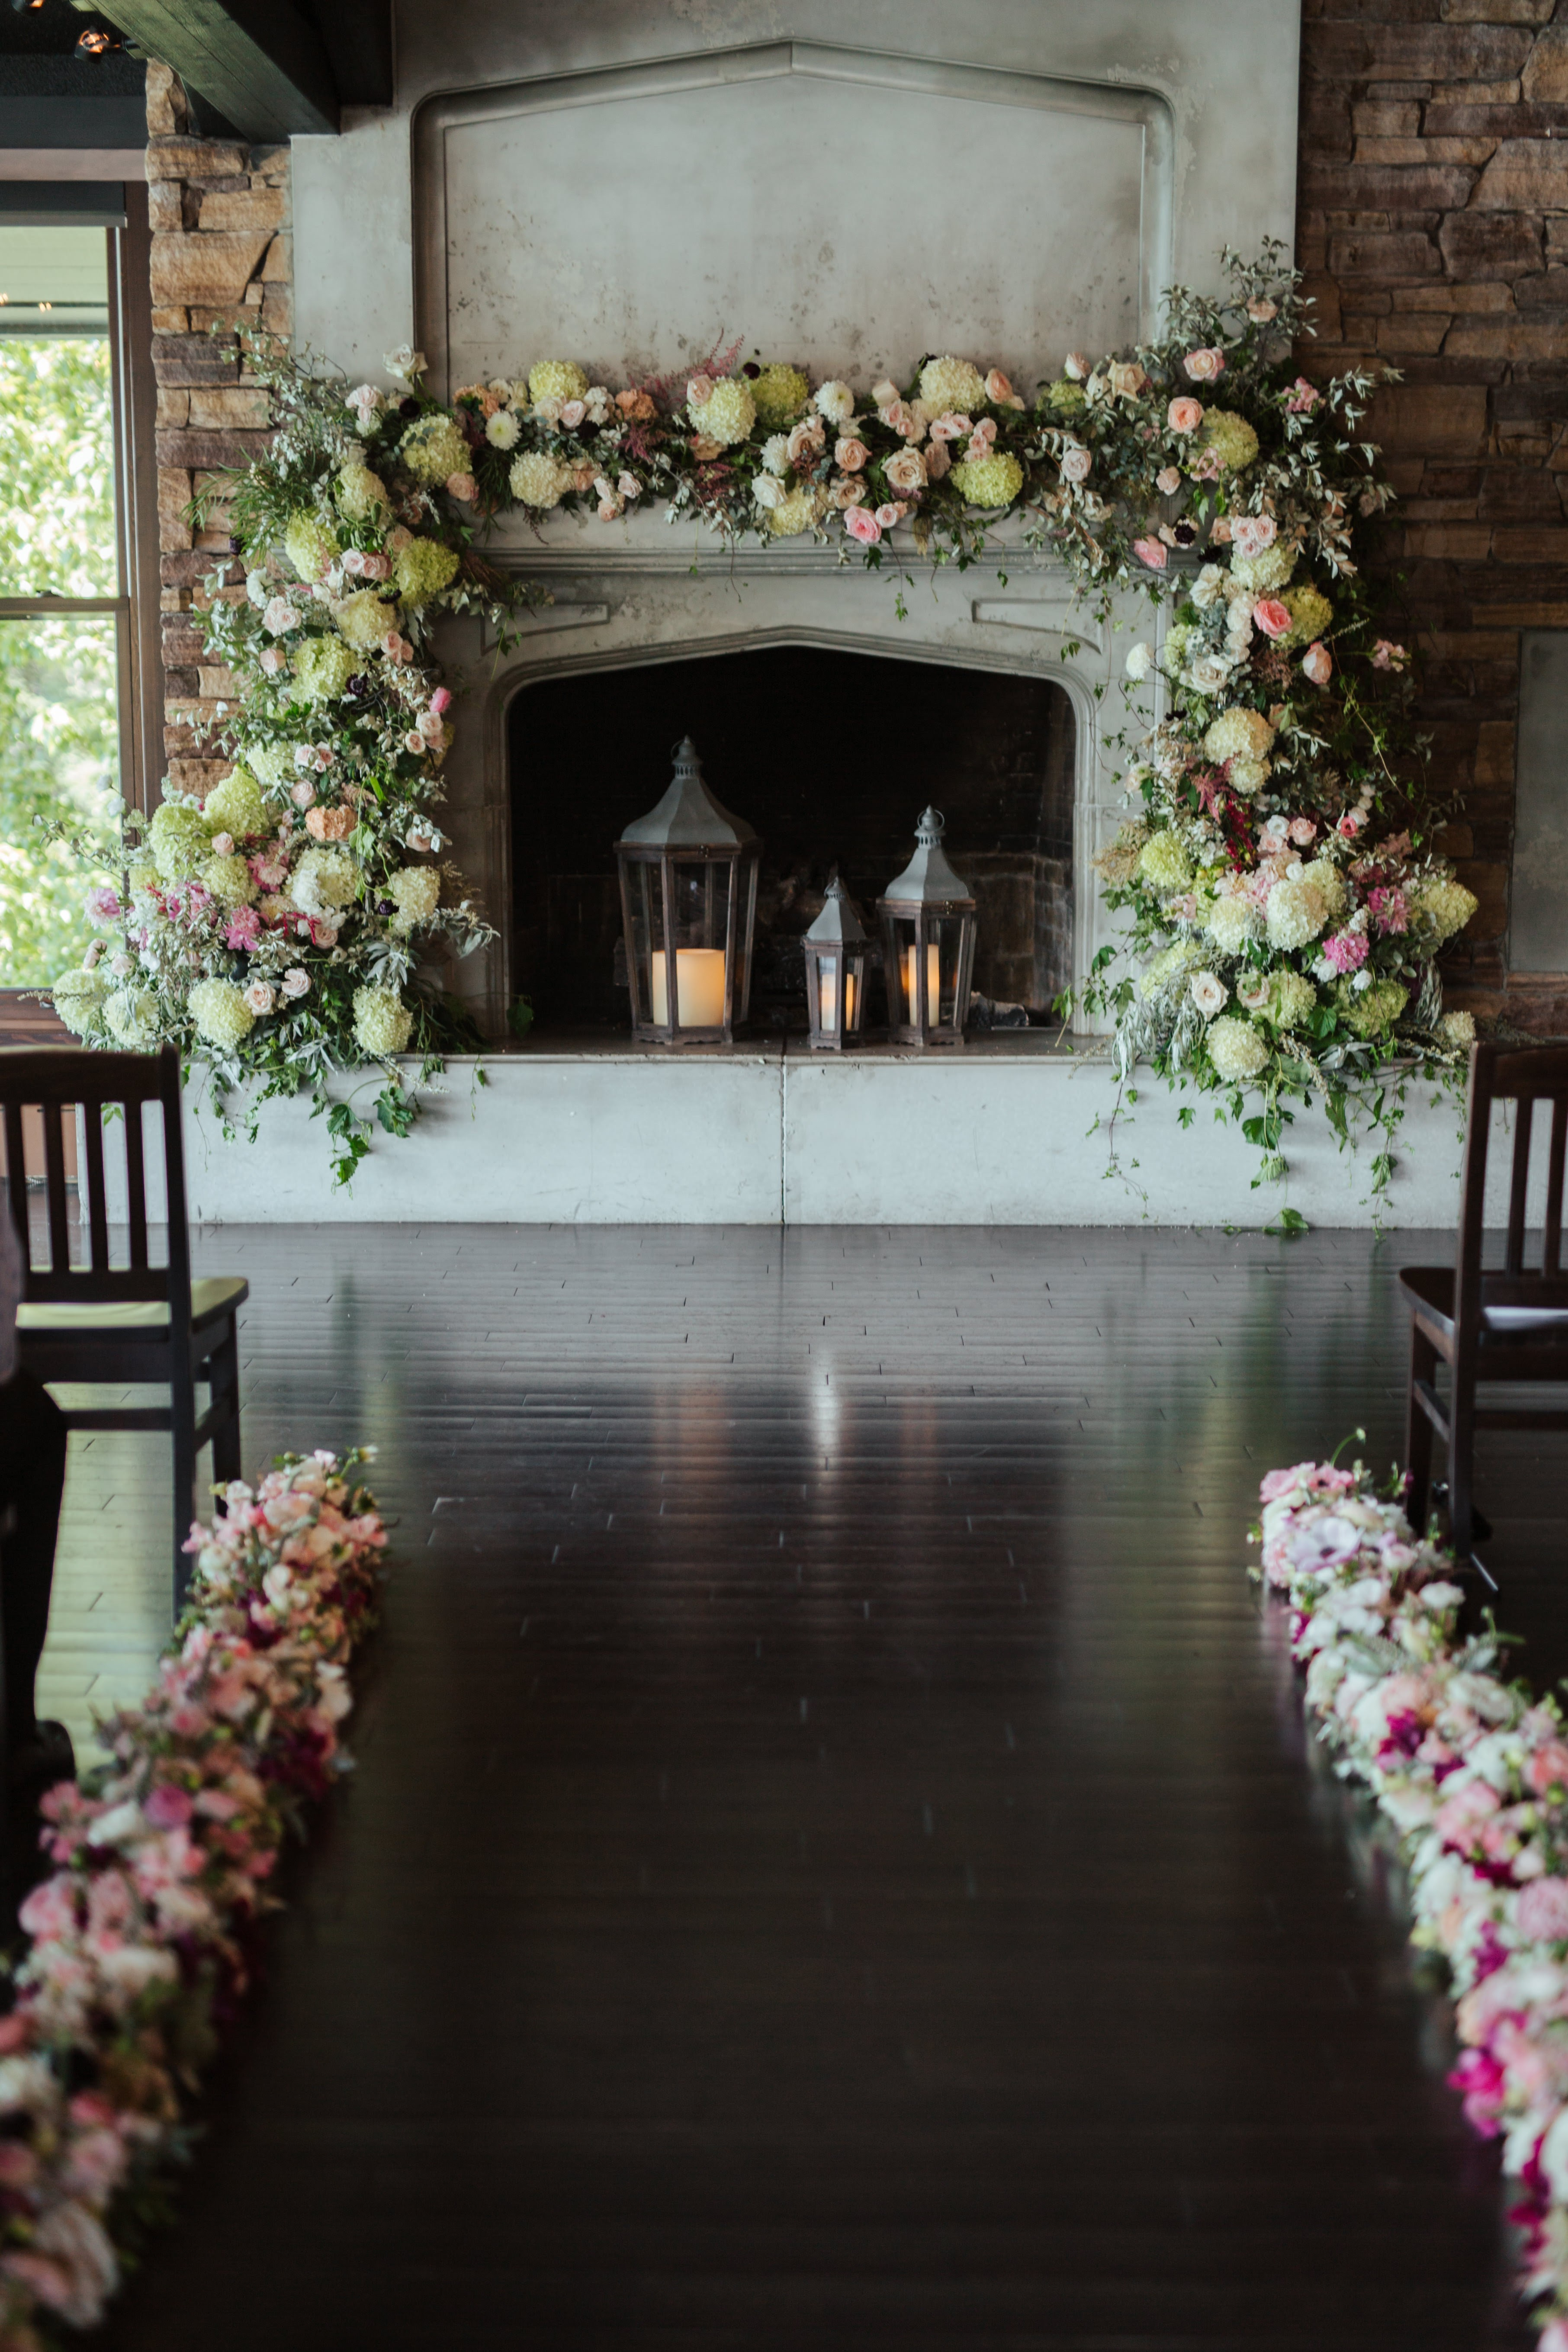 The Lakehouse Fireplace: Foam Free Flower Installation